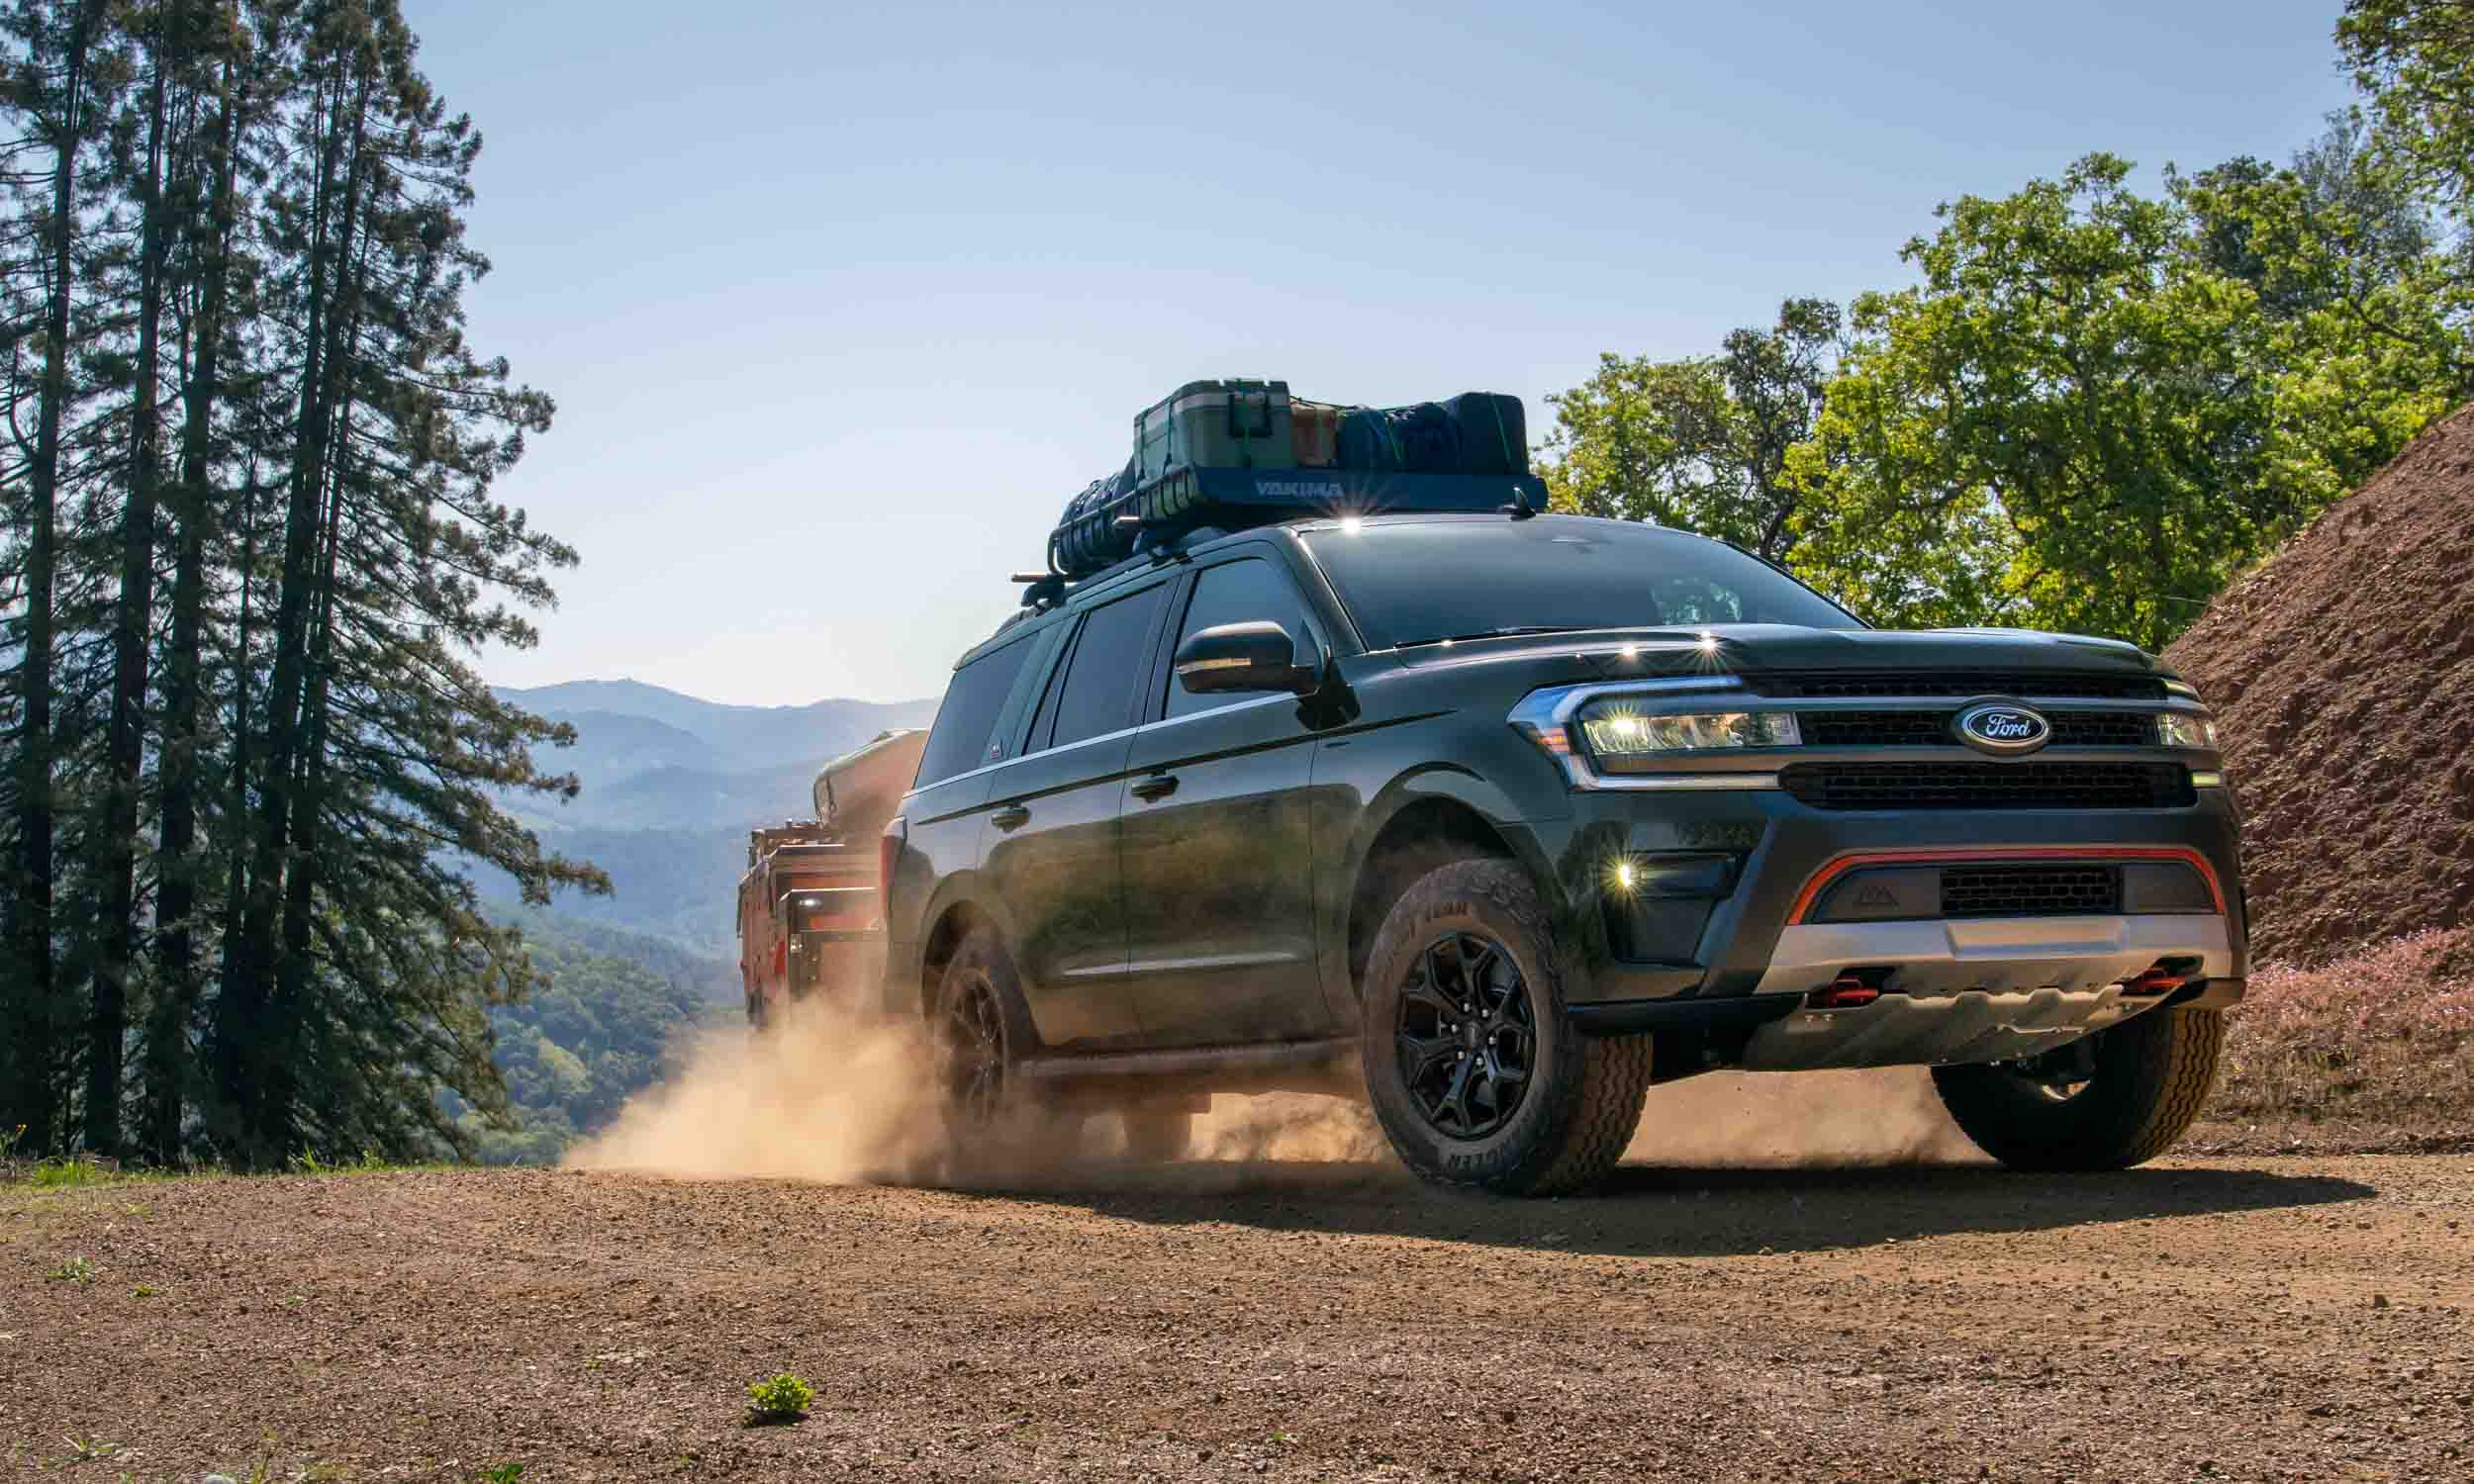 2022 Ford Expedition: Timberline and Stealth Editions Added